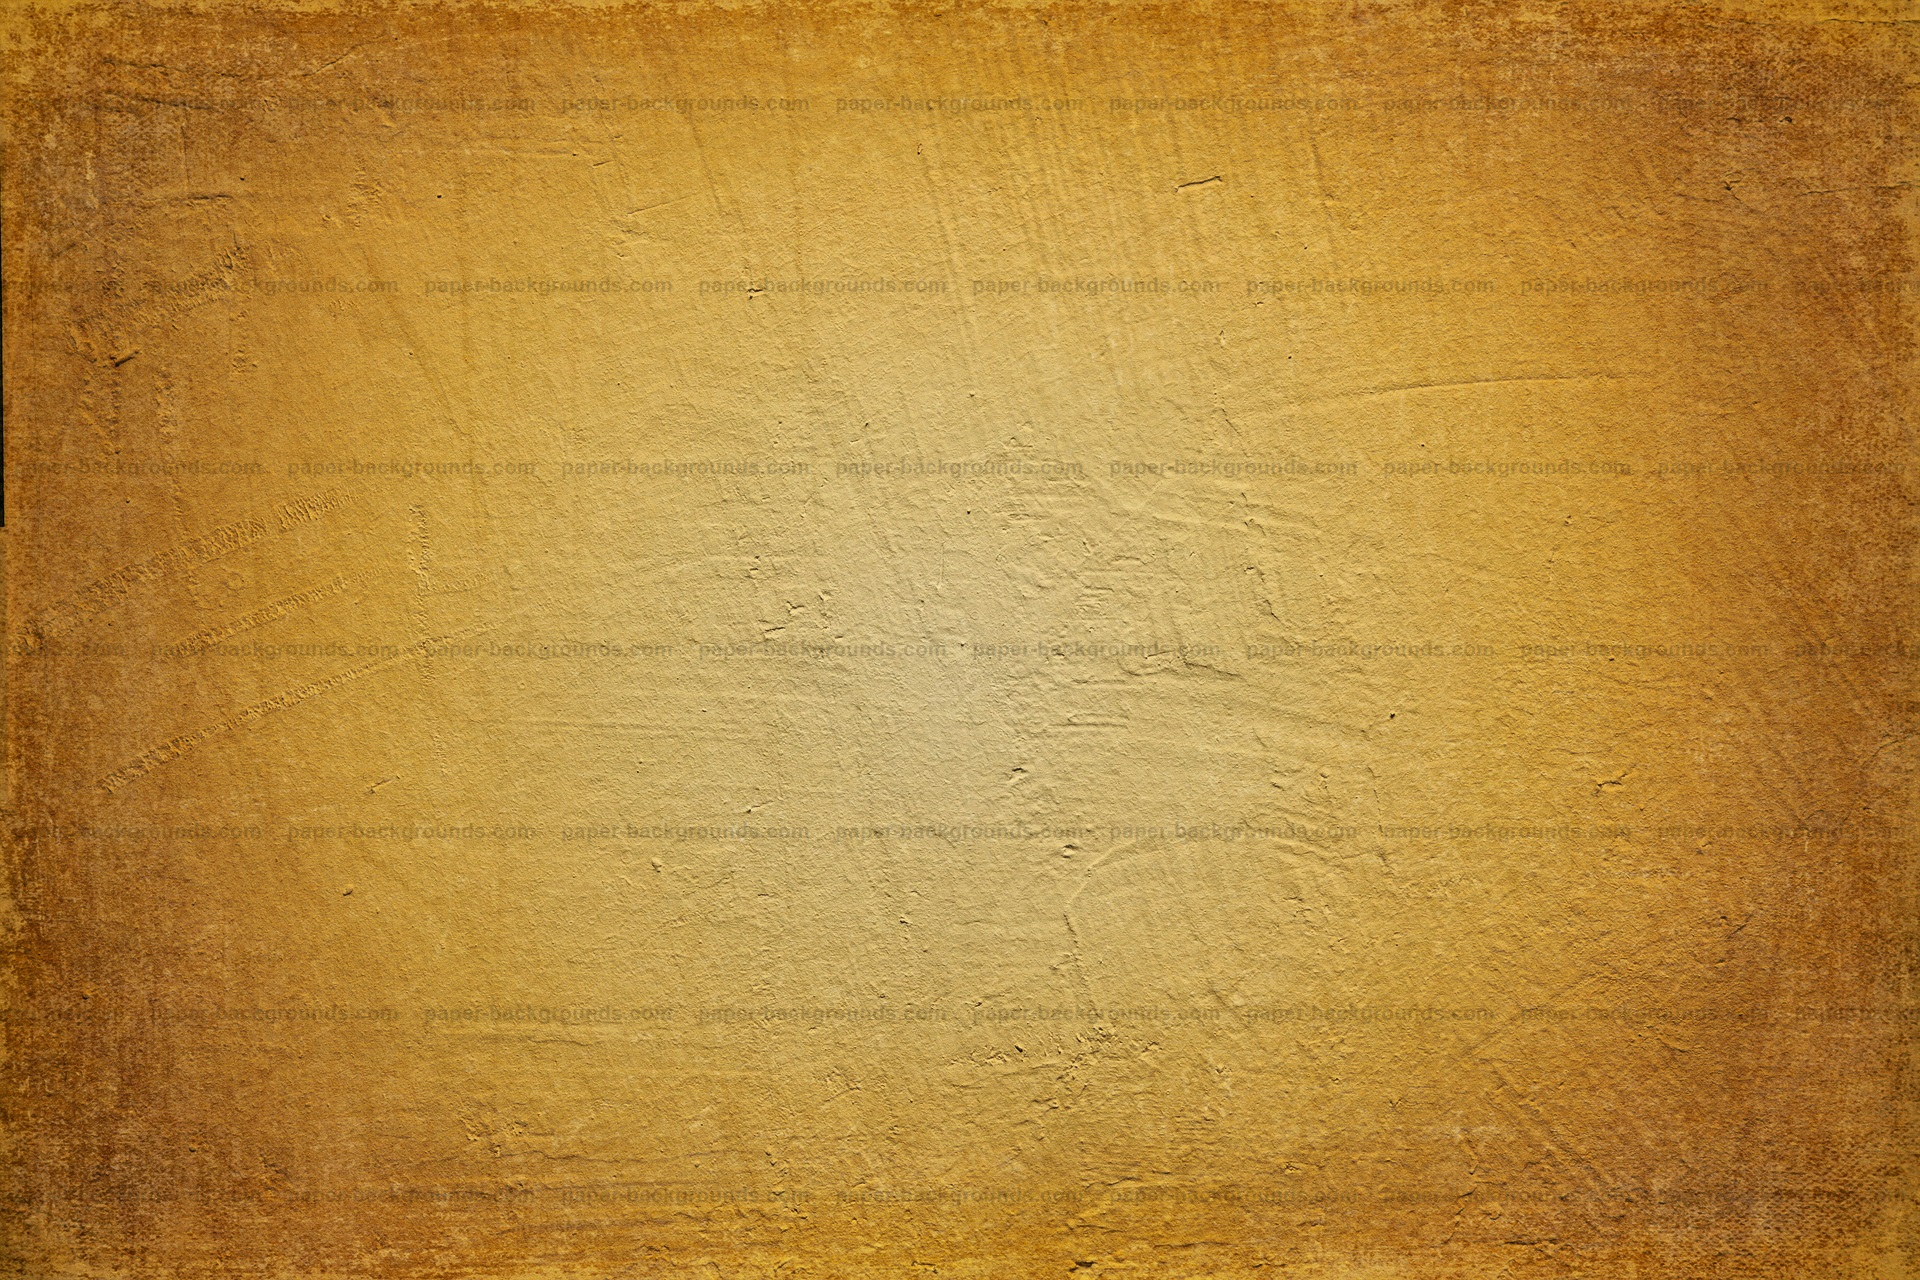 Paper Backgrounds vintage yellow background wallpaper hd 1920x1280